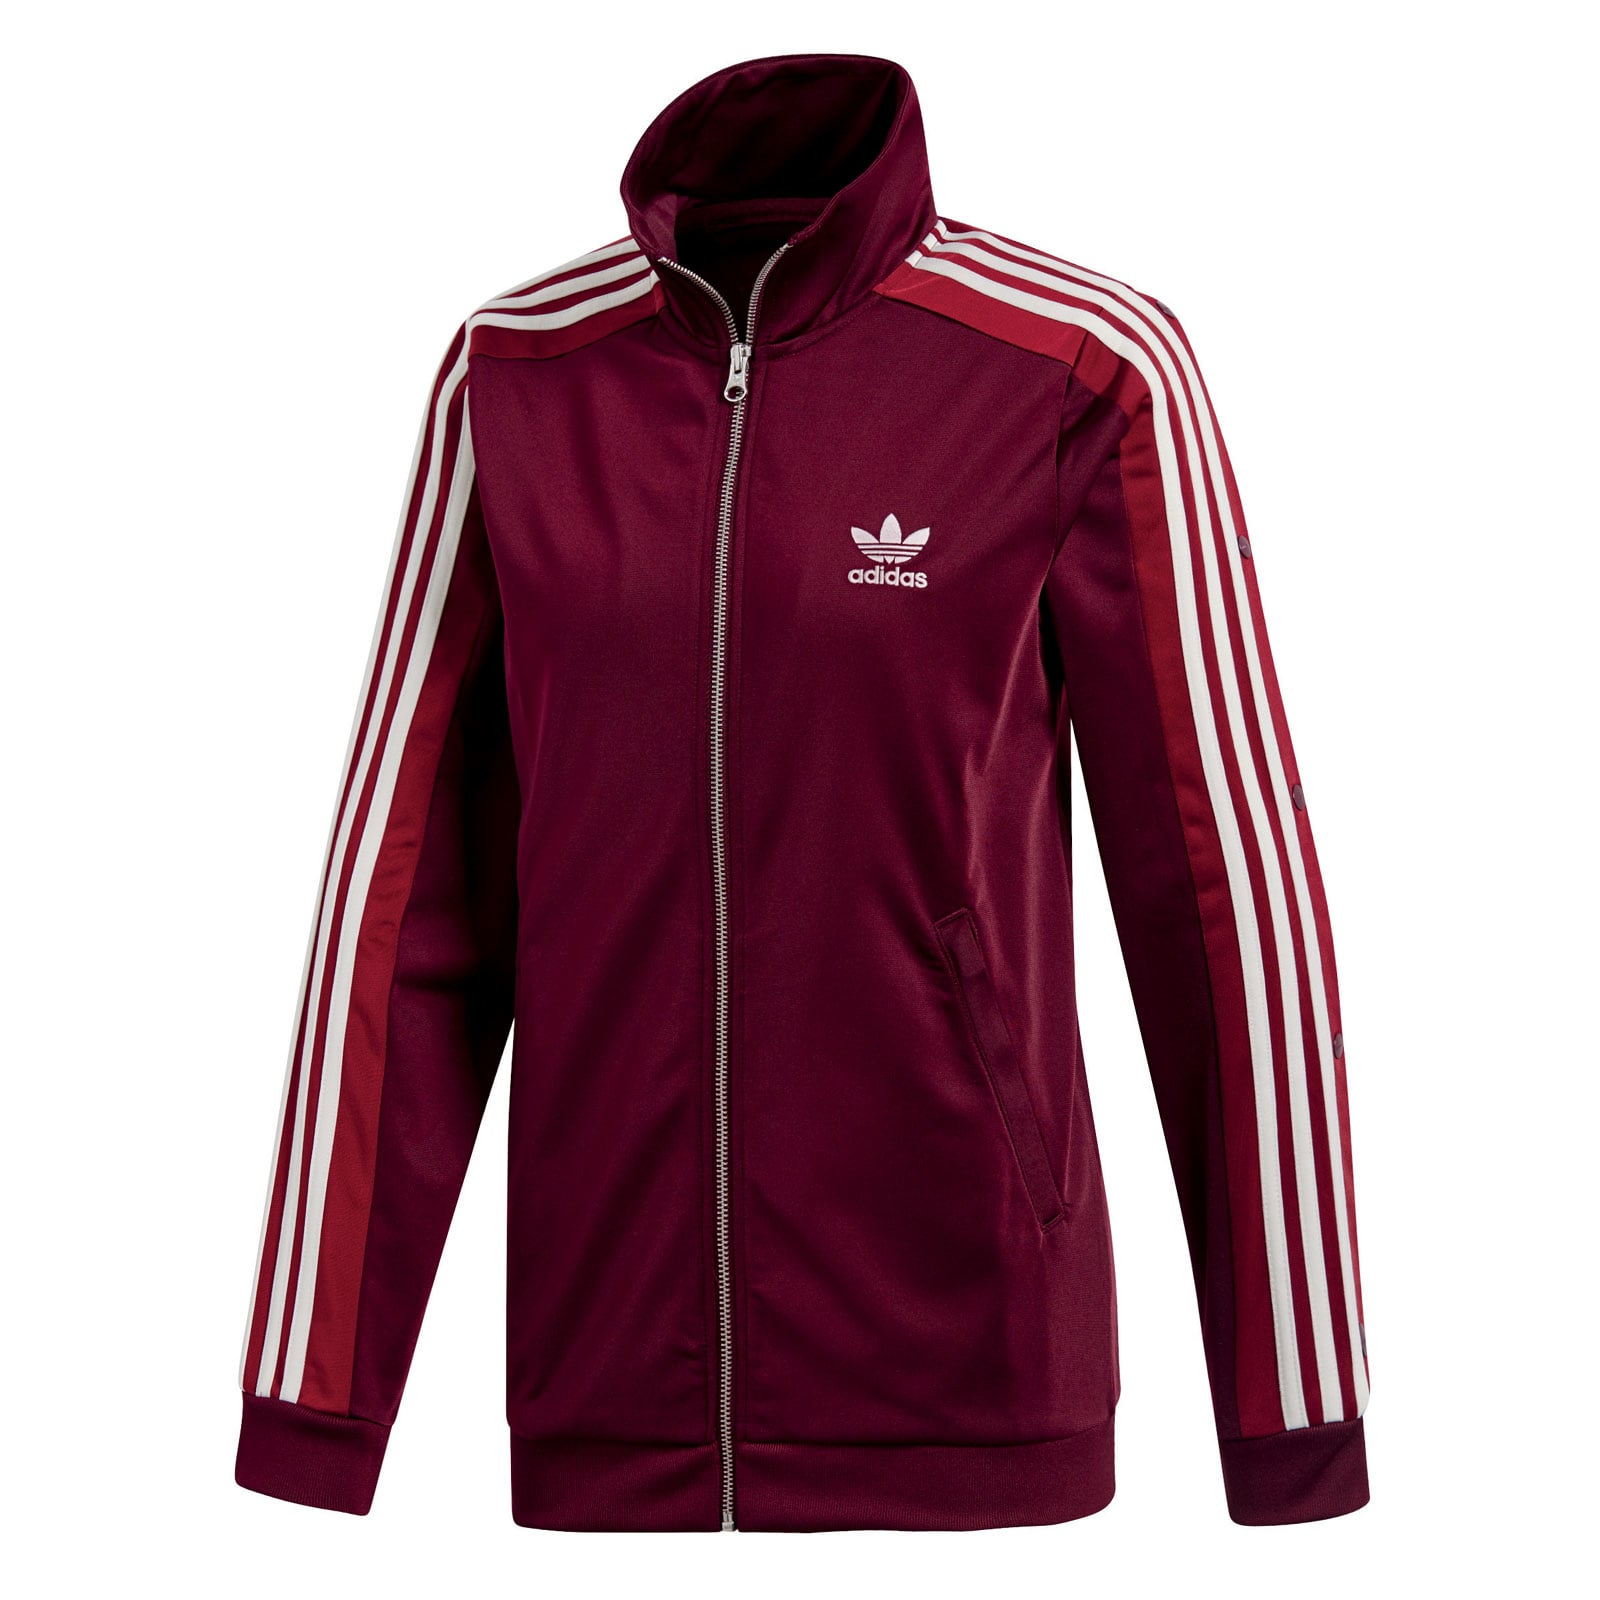 adidas Originals Adibreak Track Top Damen-Trainingsjacke Maroon